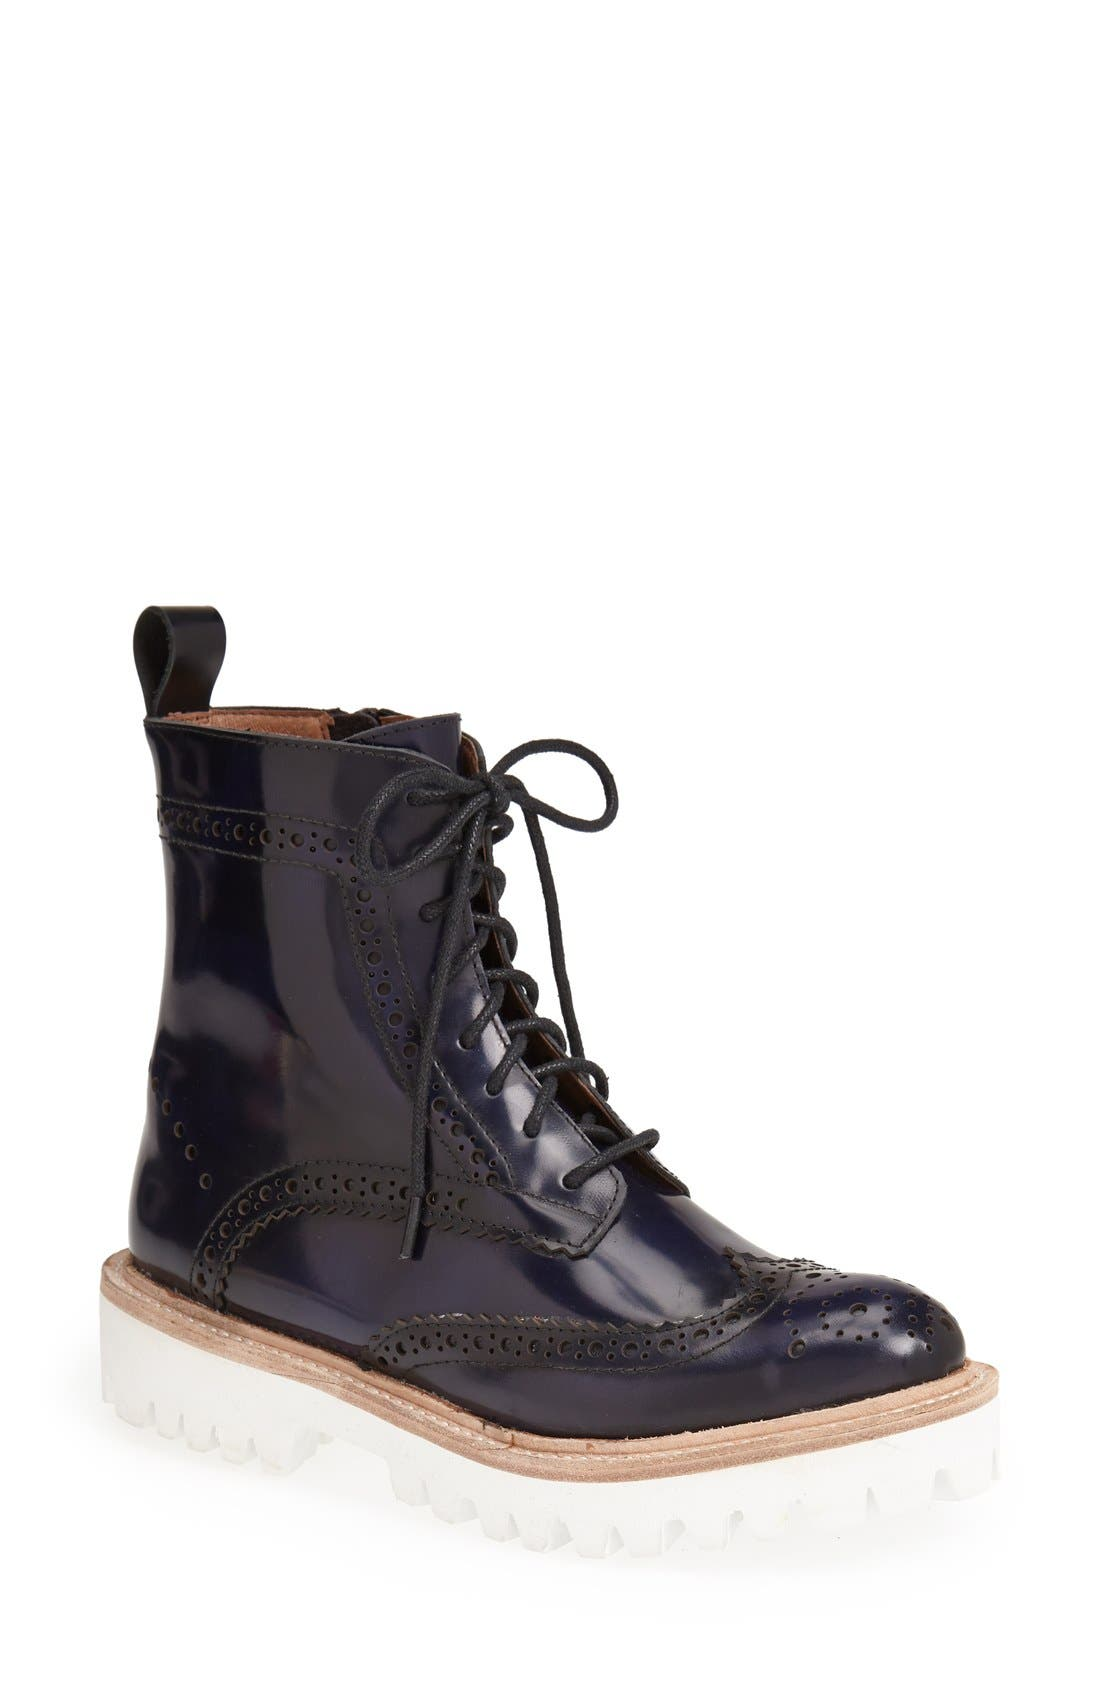 Alternate Image 1 Selected - Jeffrey Campbell 'Clash' Lug Bootie (Women)